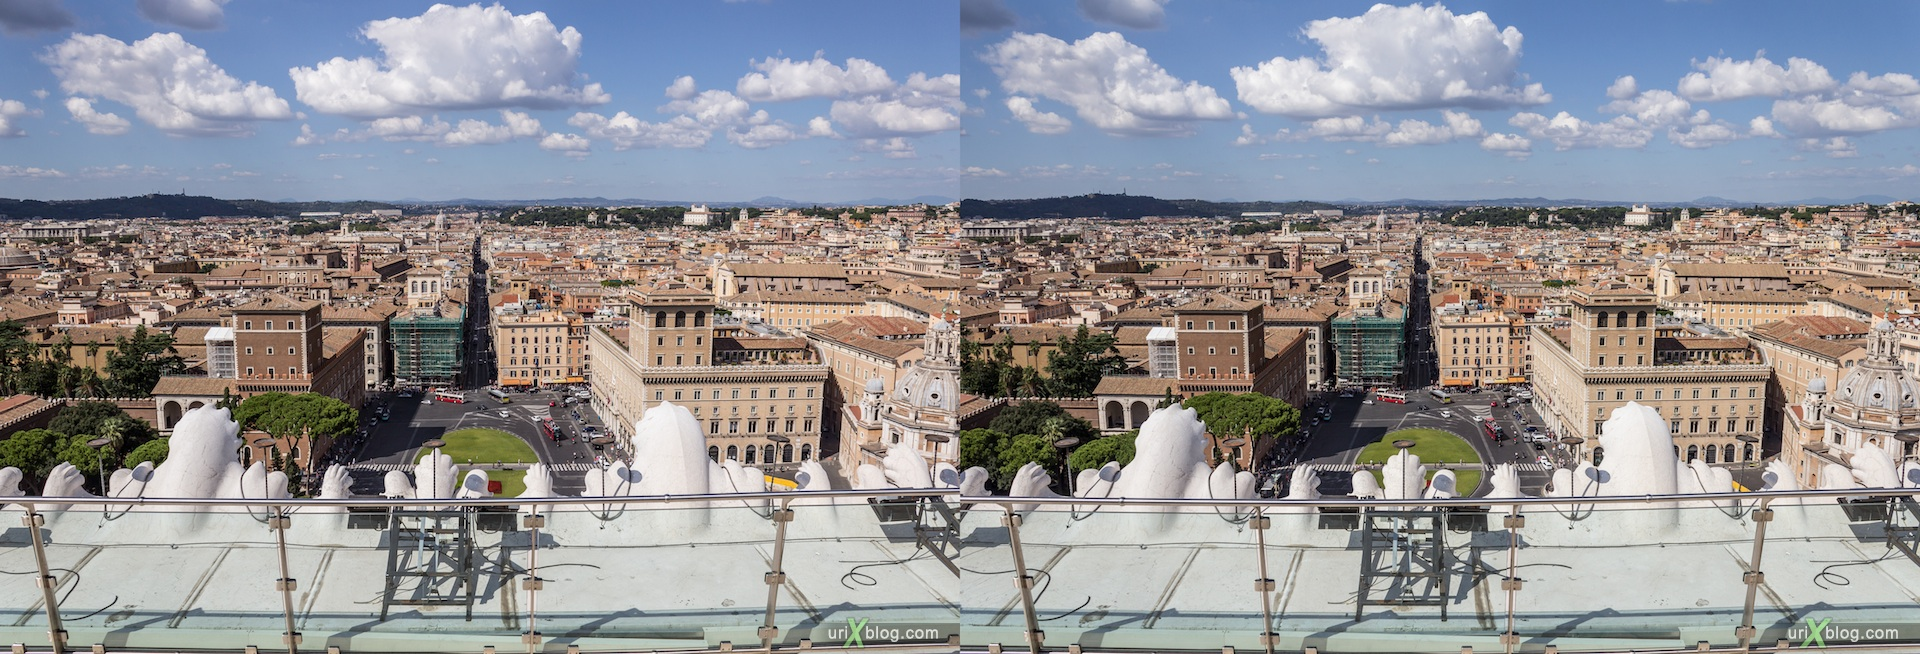 2012, Vittoriano, Monument of Vittorio Emanuele II, roof, panorama, viewpoint, city view, Rome, Italy, Europe, 3D, stereo pair, cross-eyed, crossview, cross view stereo pair